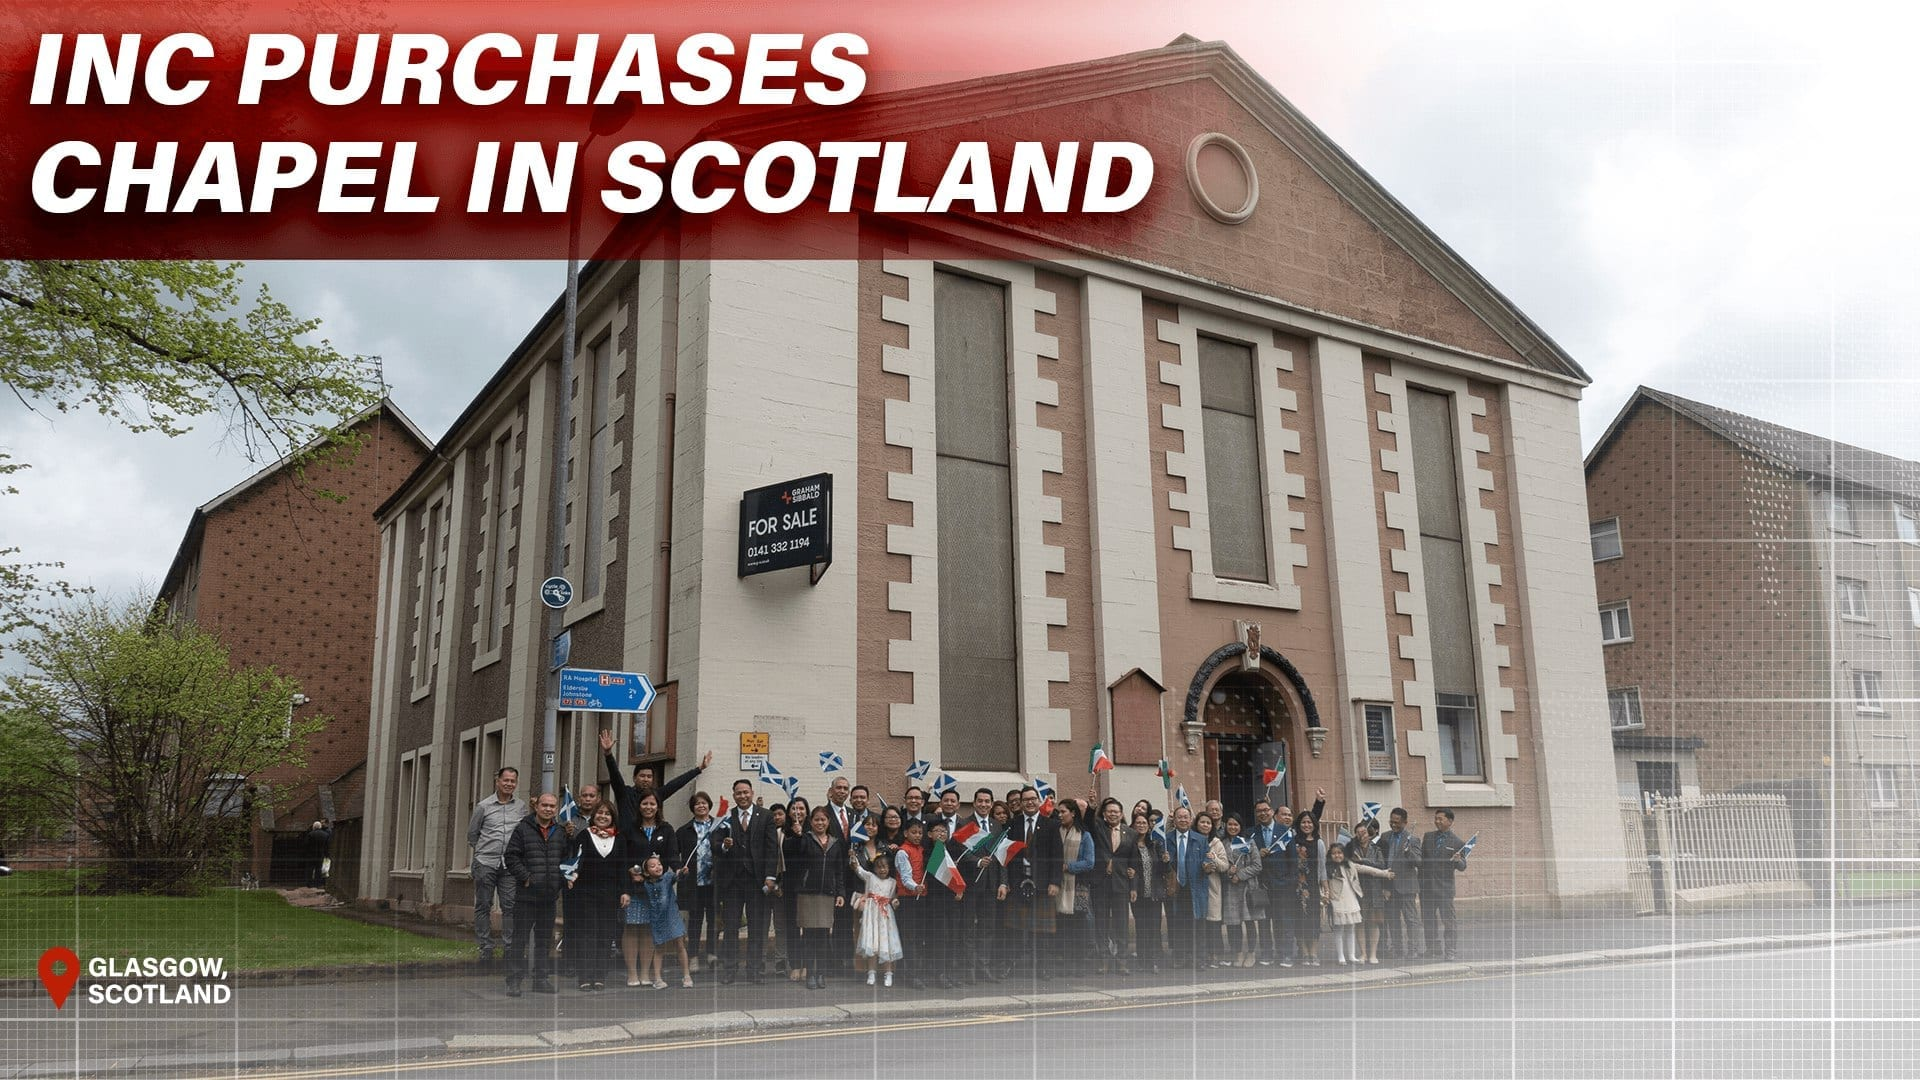 INC Purchases Chapel in Scotland